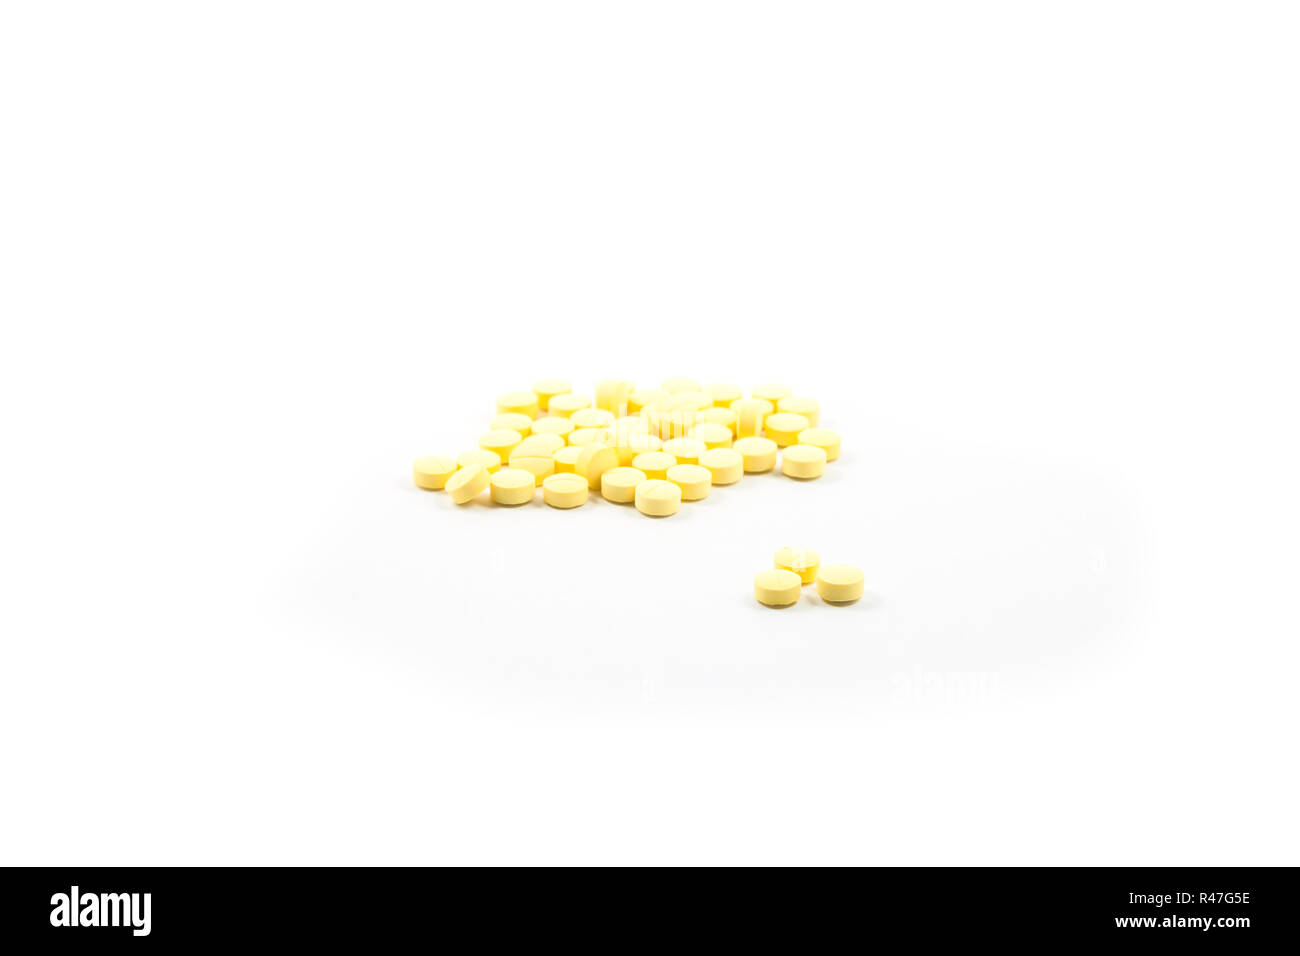 Yellow pills isolated on white background - Stock Image